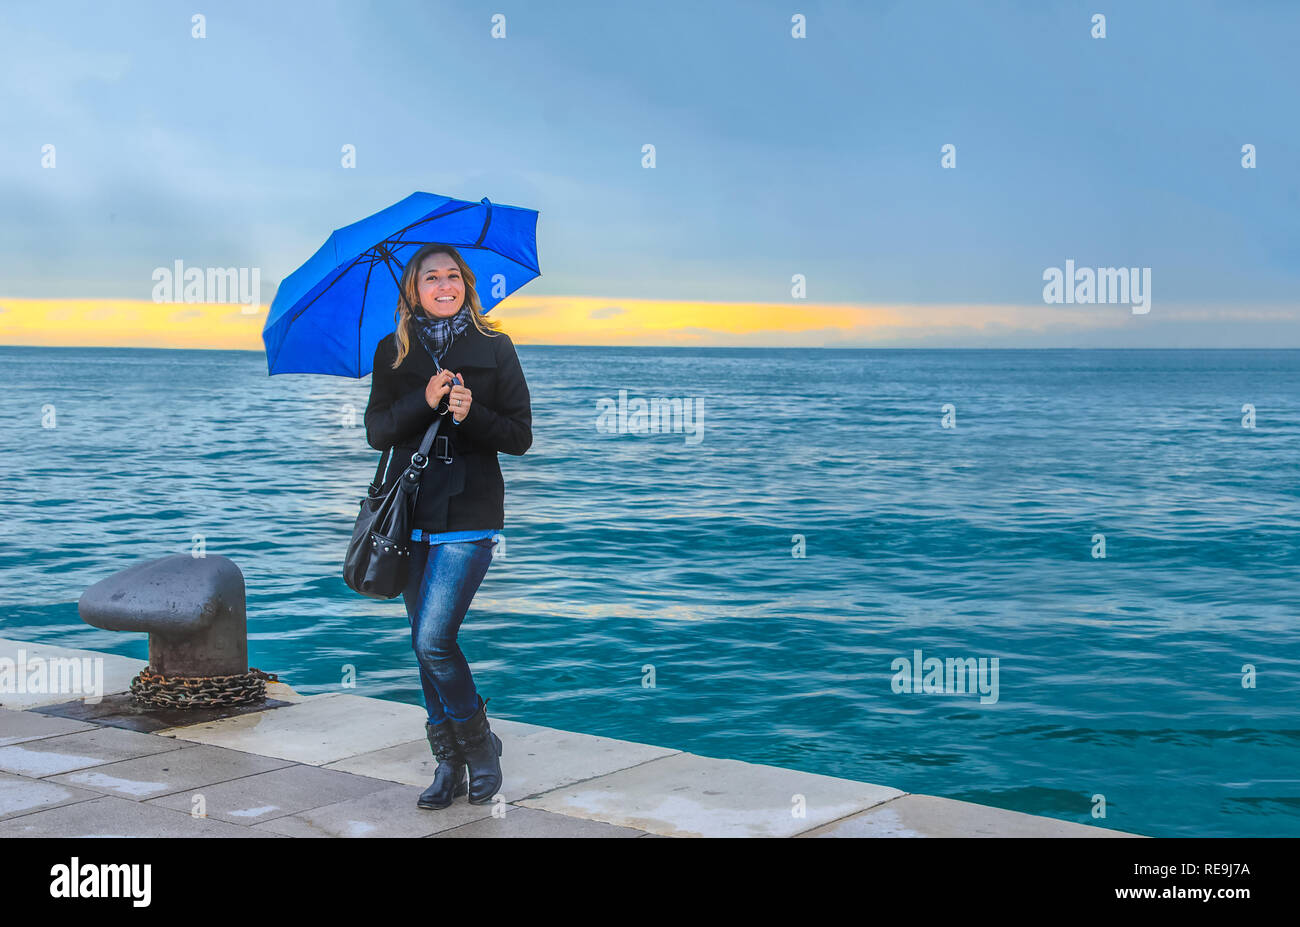 smiling woman with umbrella on stormy sea raining horizontal background  - Stock Image